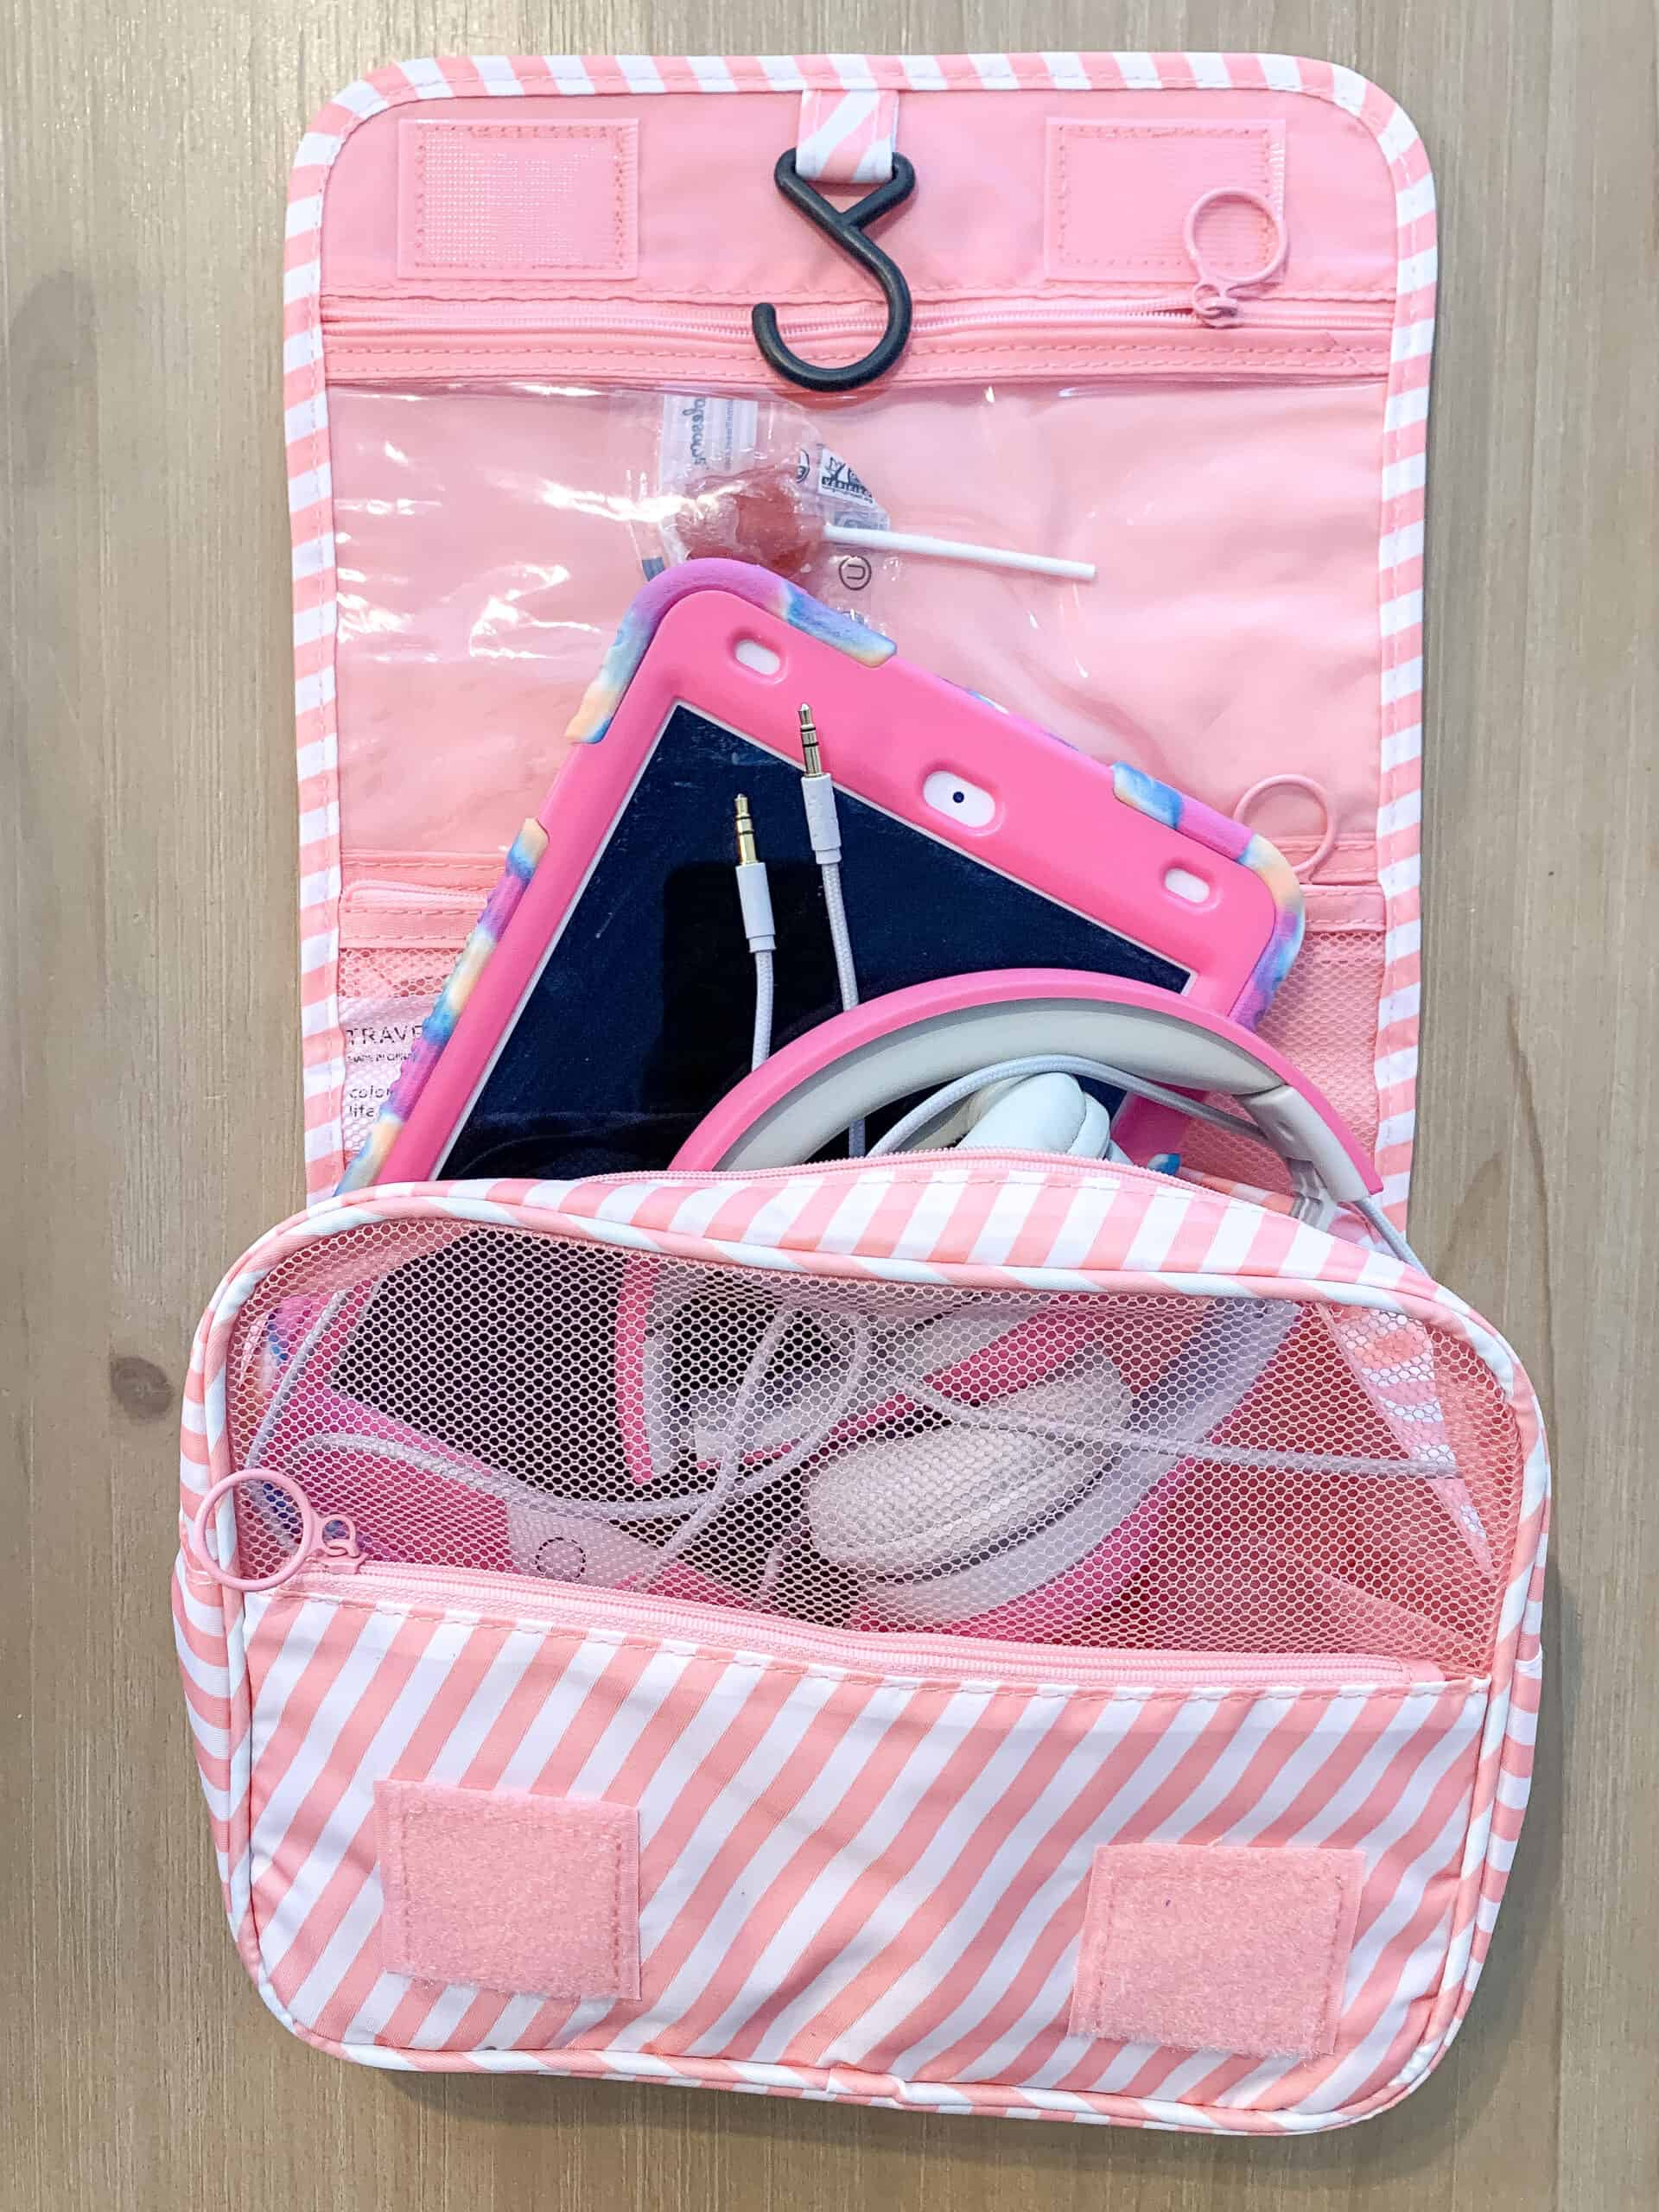 Toddler Travel bag for iPad